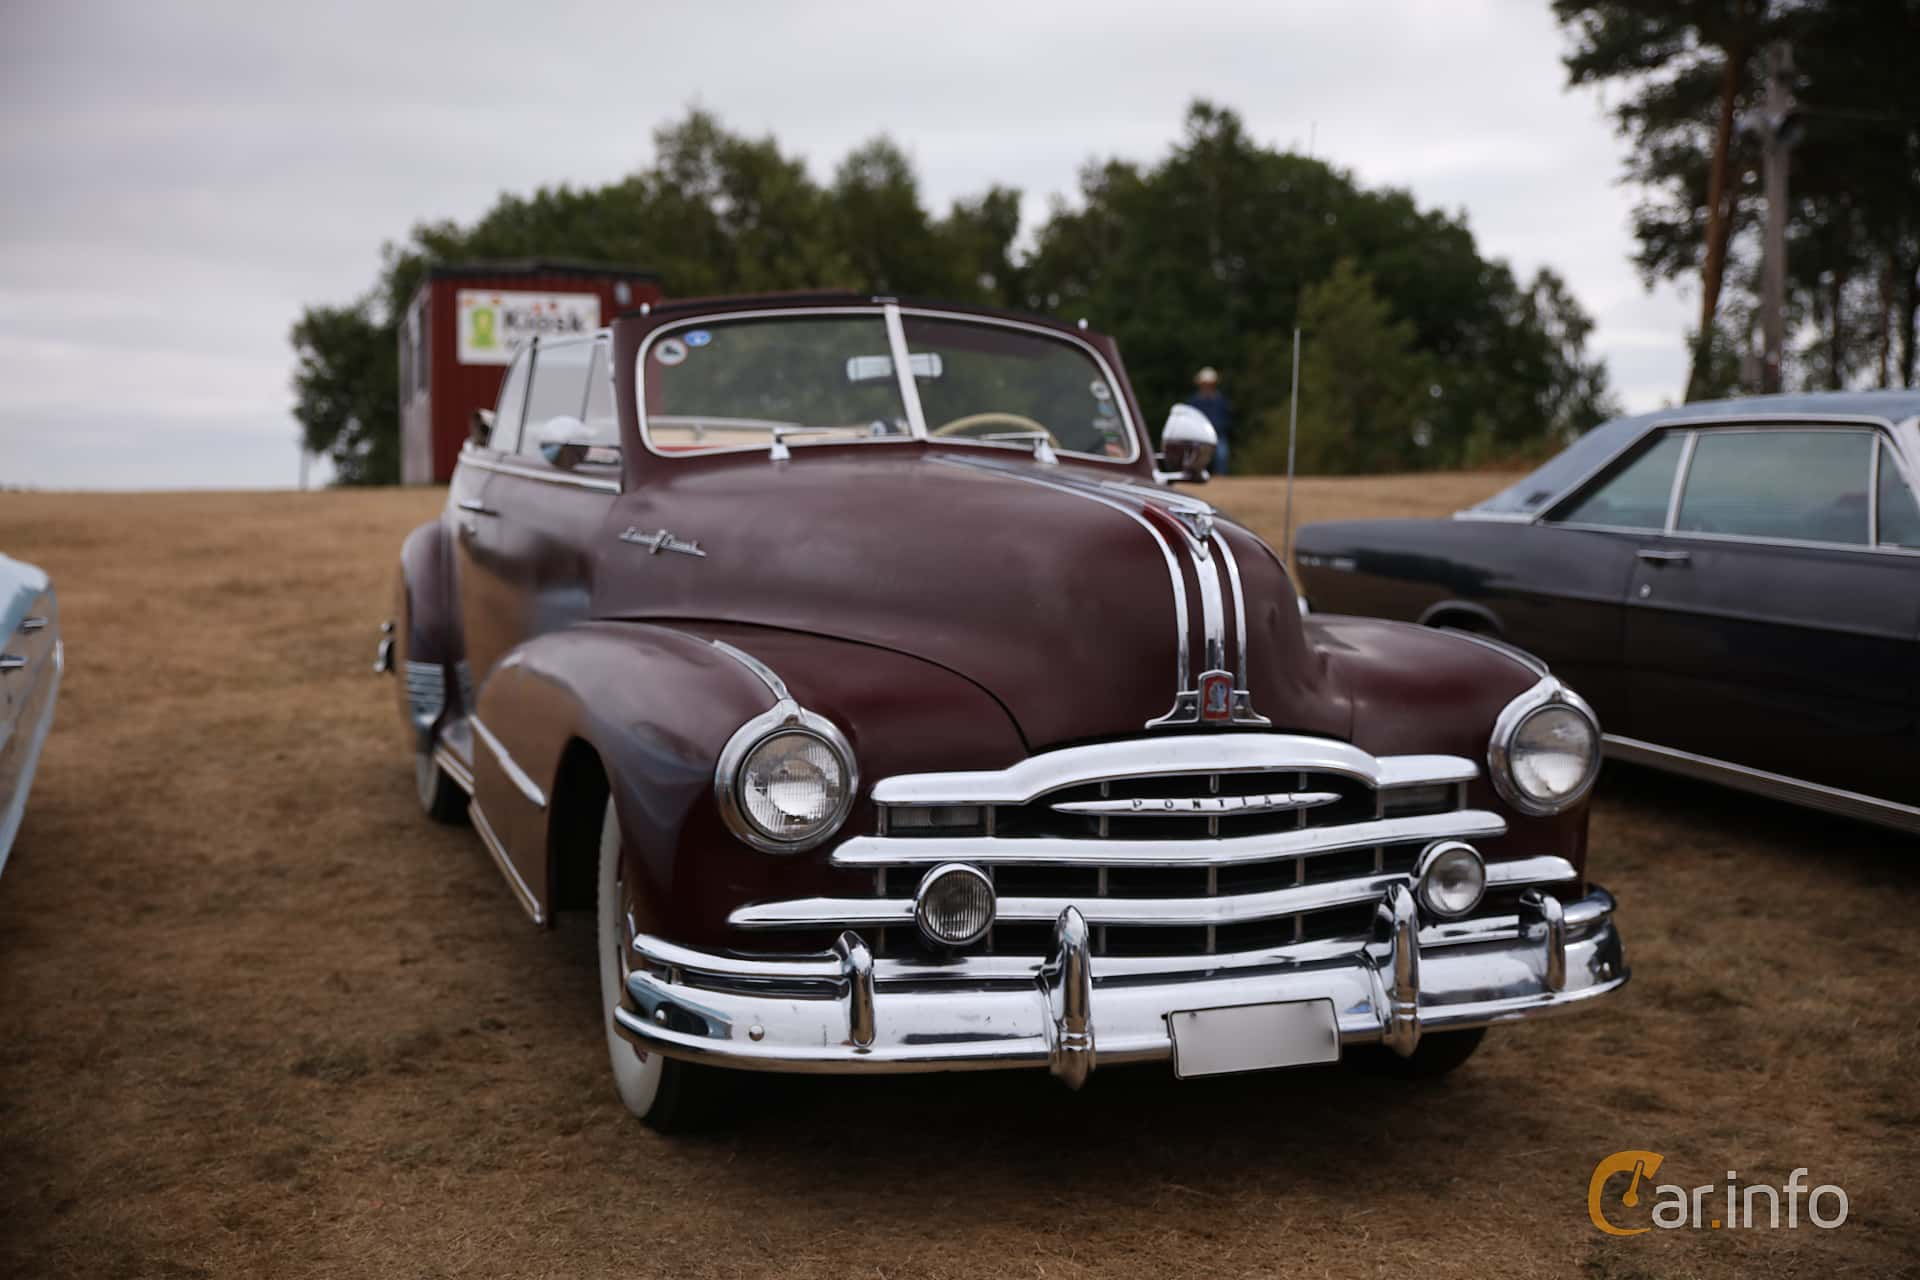 3 Images Of Pontiac Torpedo Convertible 41 Hydra Matic 105hp 1948 Front Side 105ps At